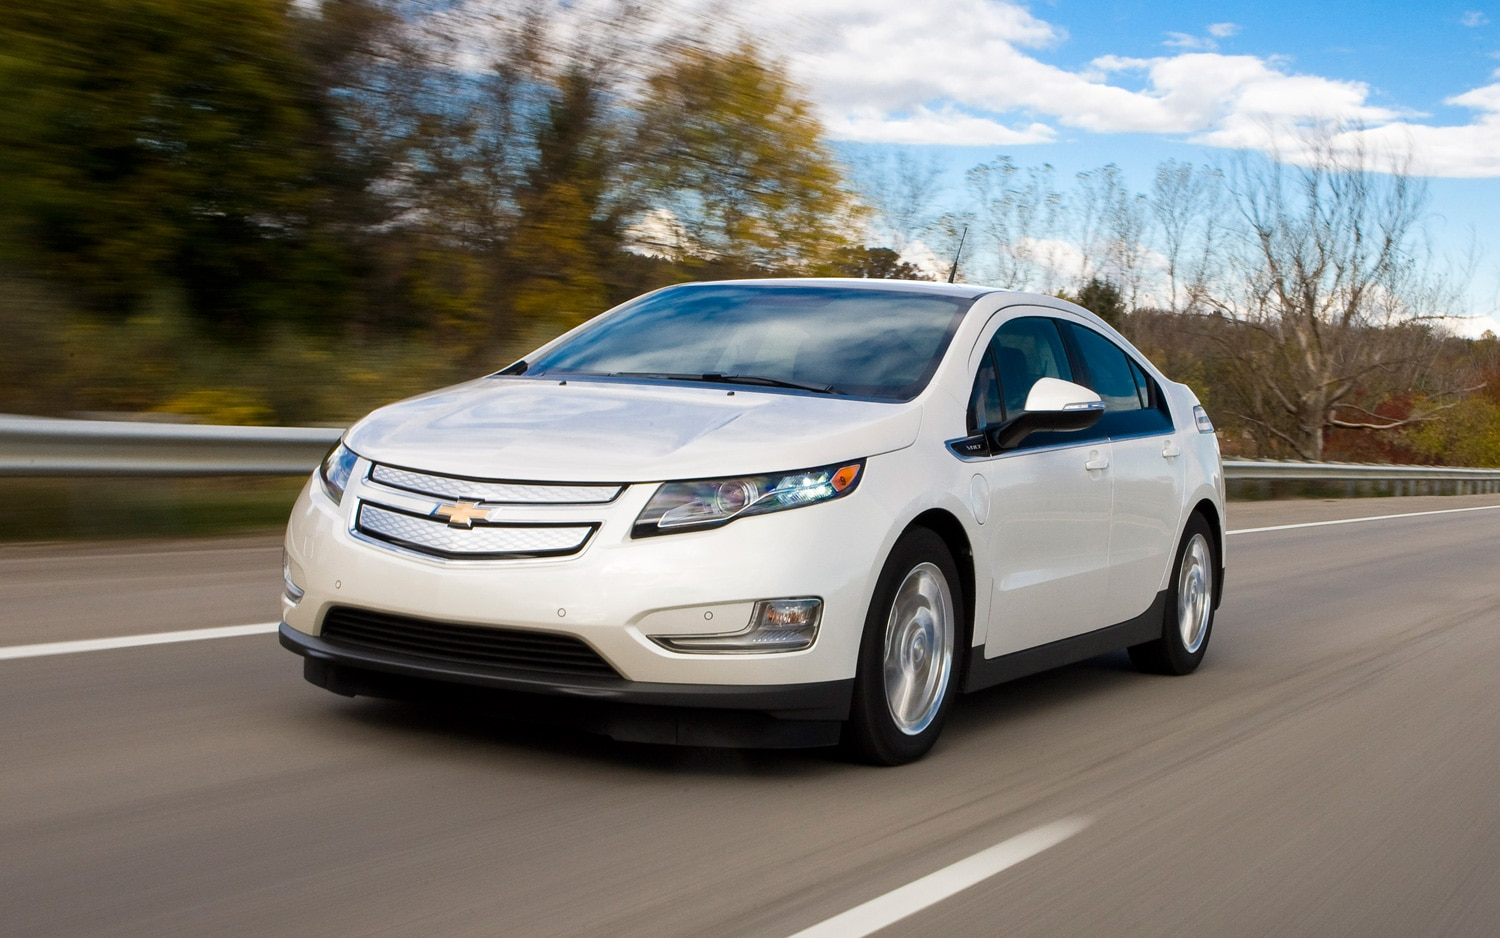 2013 Chevrolet Volt Front Three Quarter Motion1